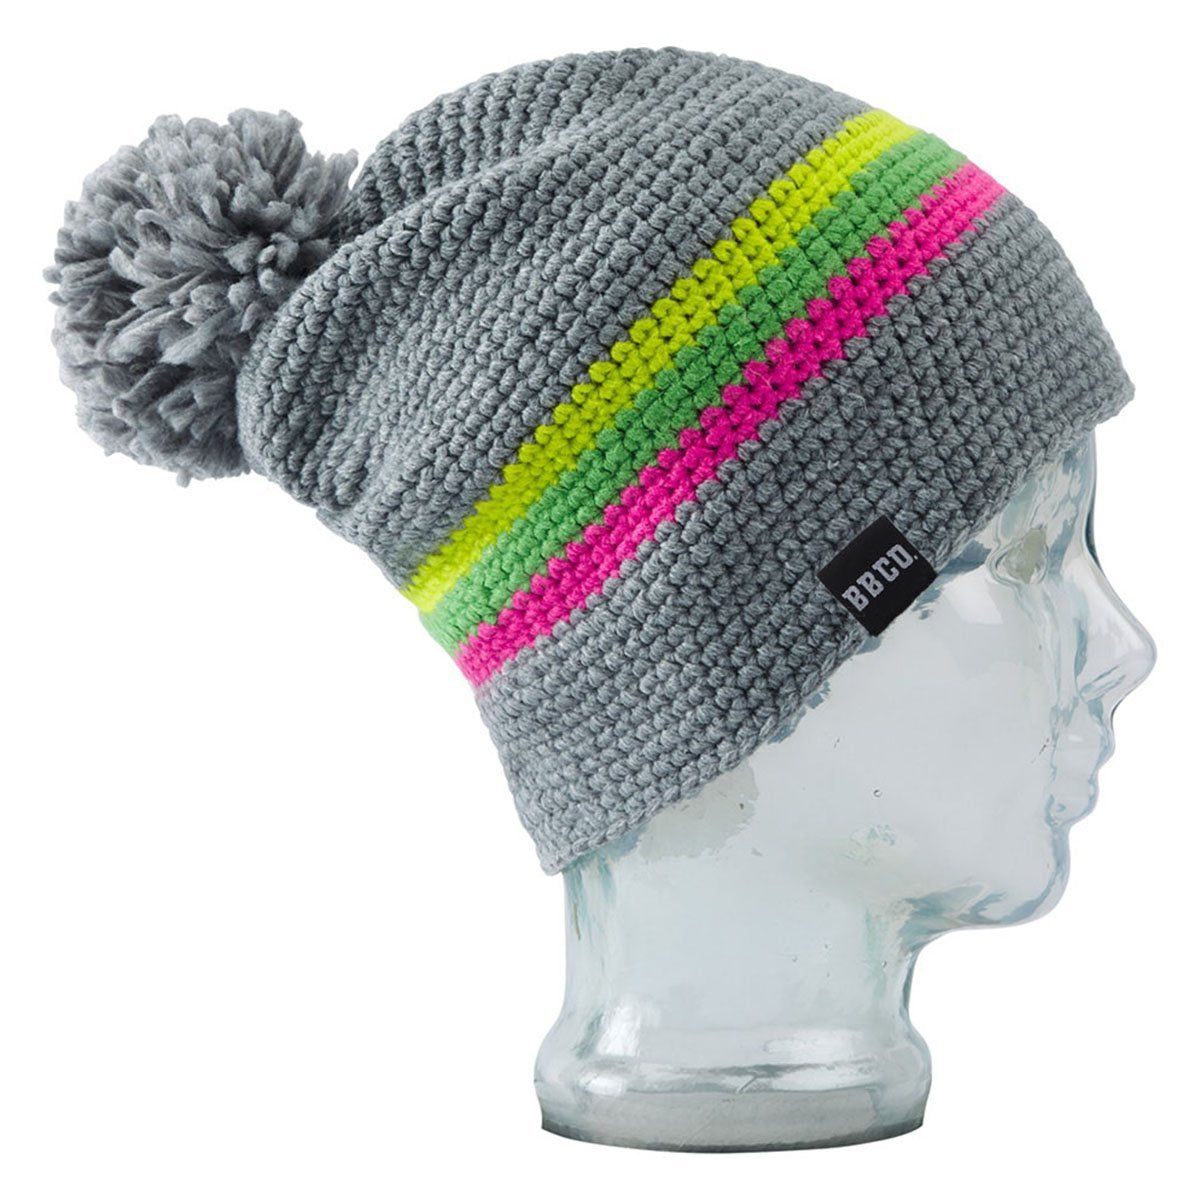 BBCOQNE001, BBCo, Neon Quandary Beanie, Grey/Neon, Chunky Knit Wool | Ski Bobble Hat